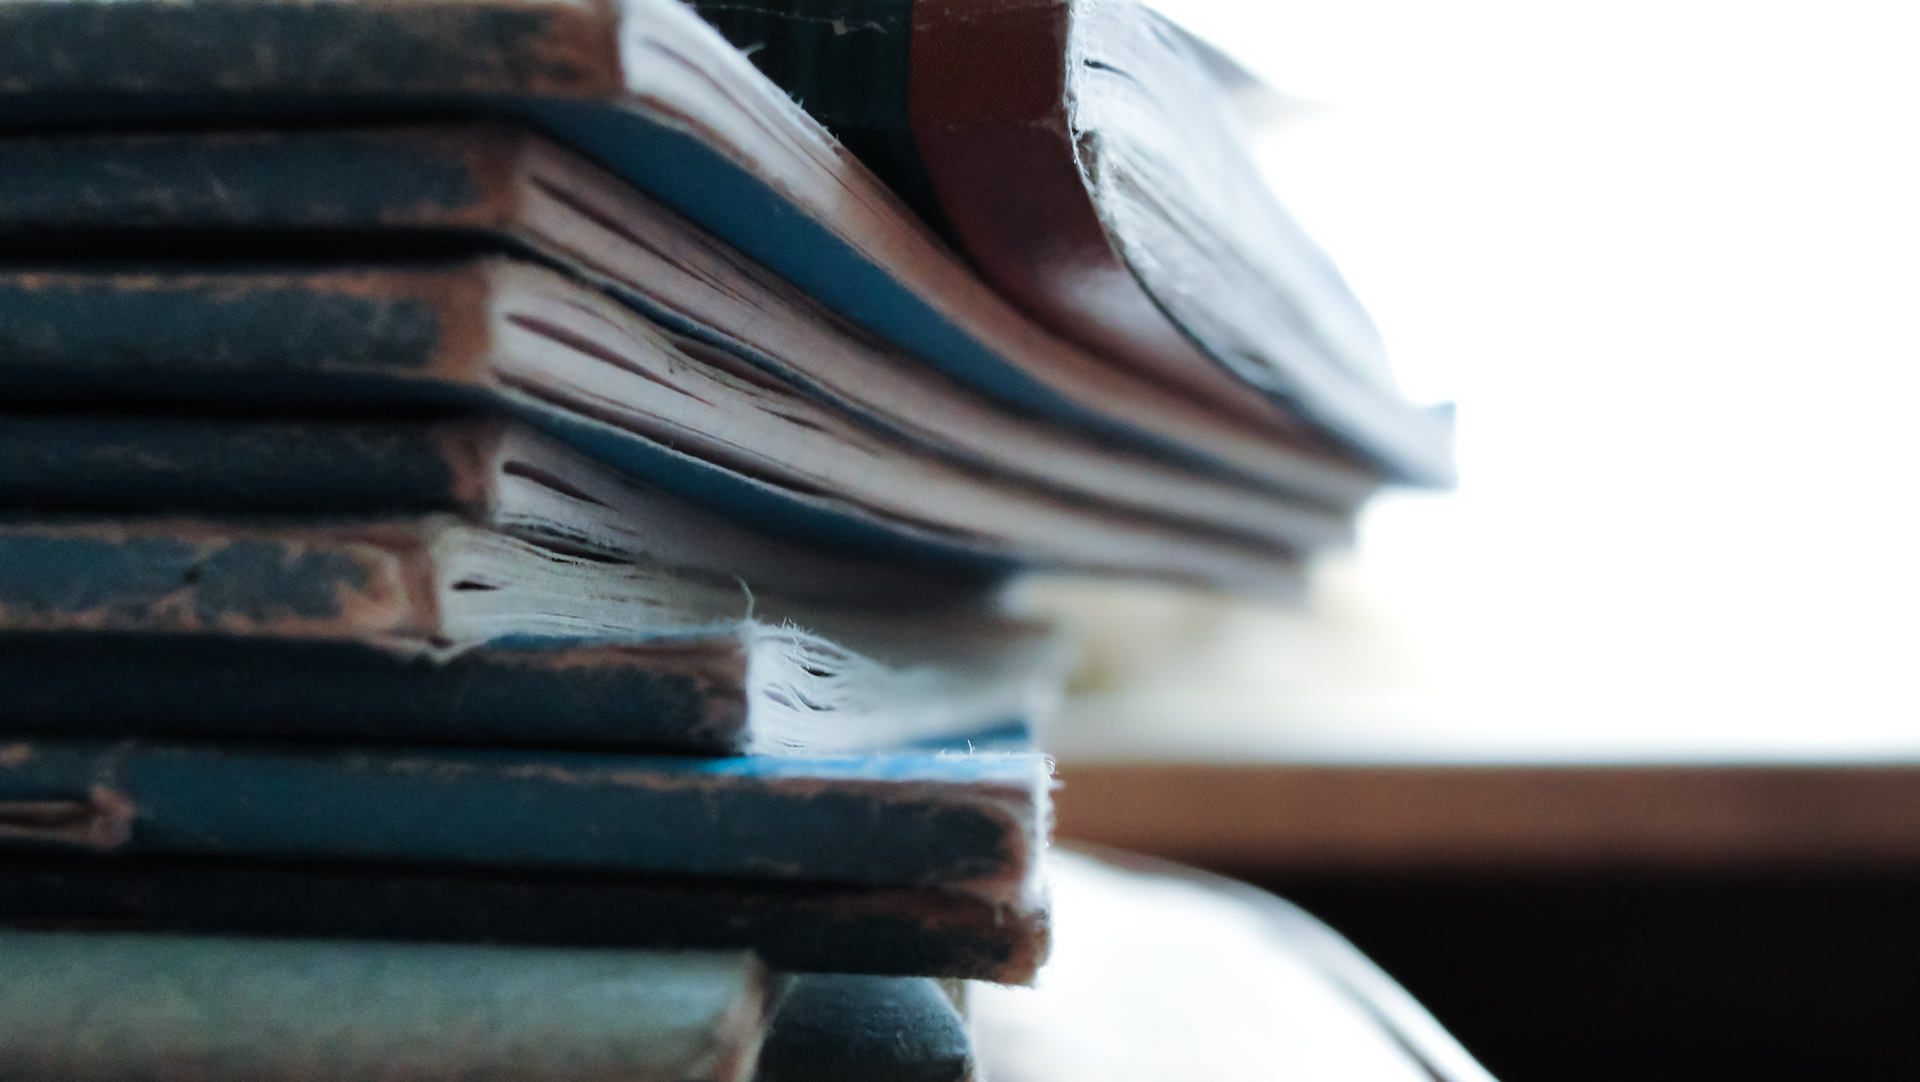 Stack of books - financial management